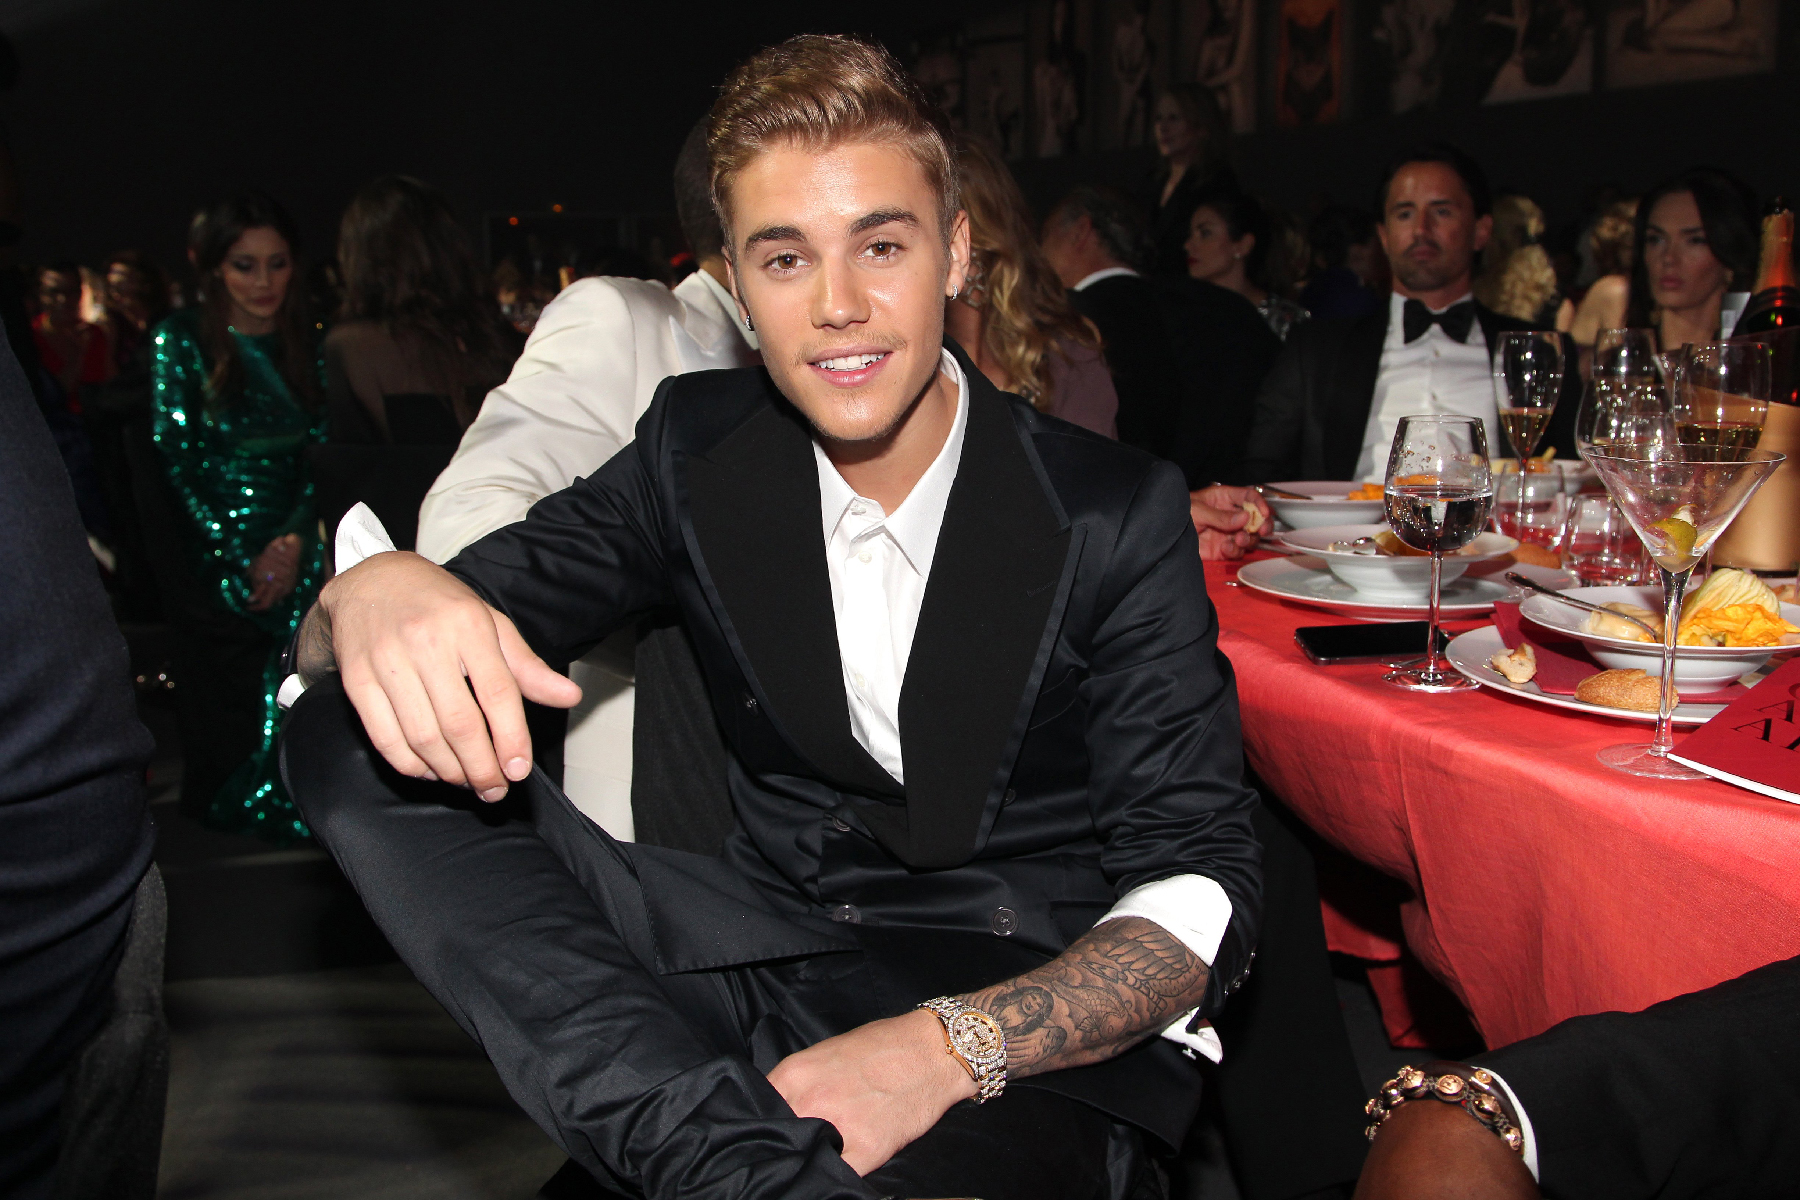 Justin Bieber Sued for Allegedly Hitting Man With Ferrari